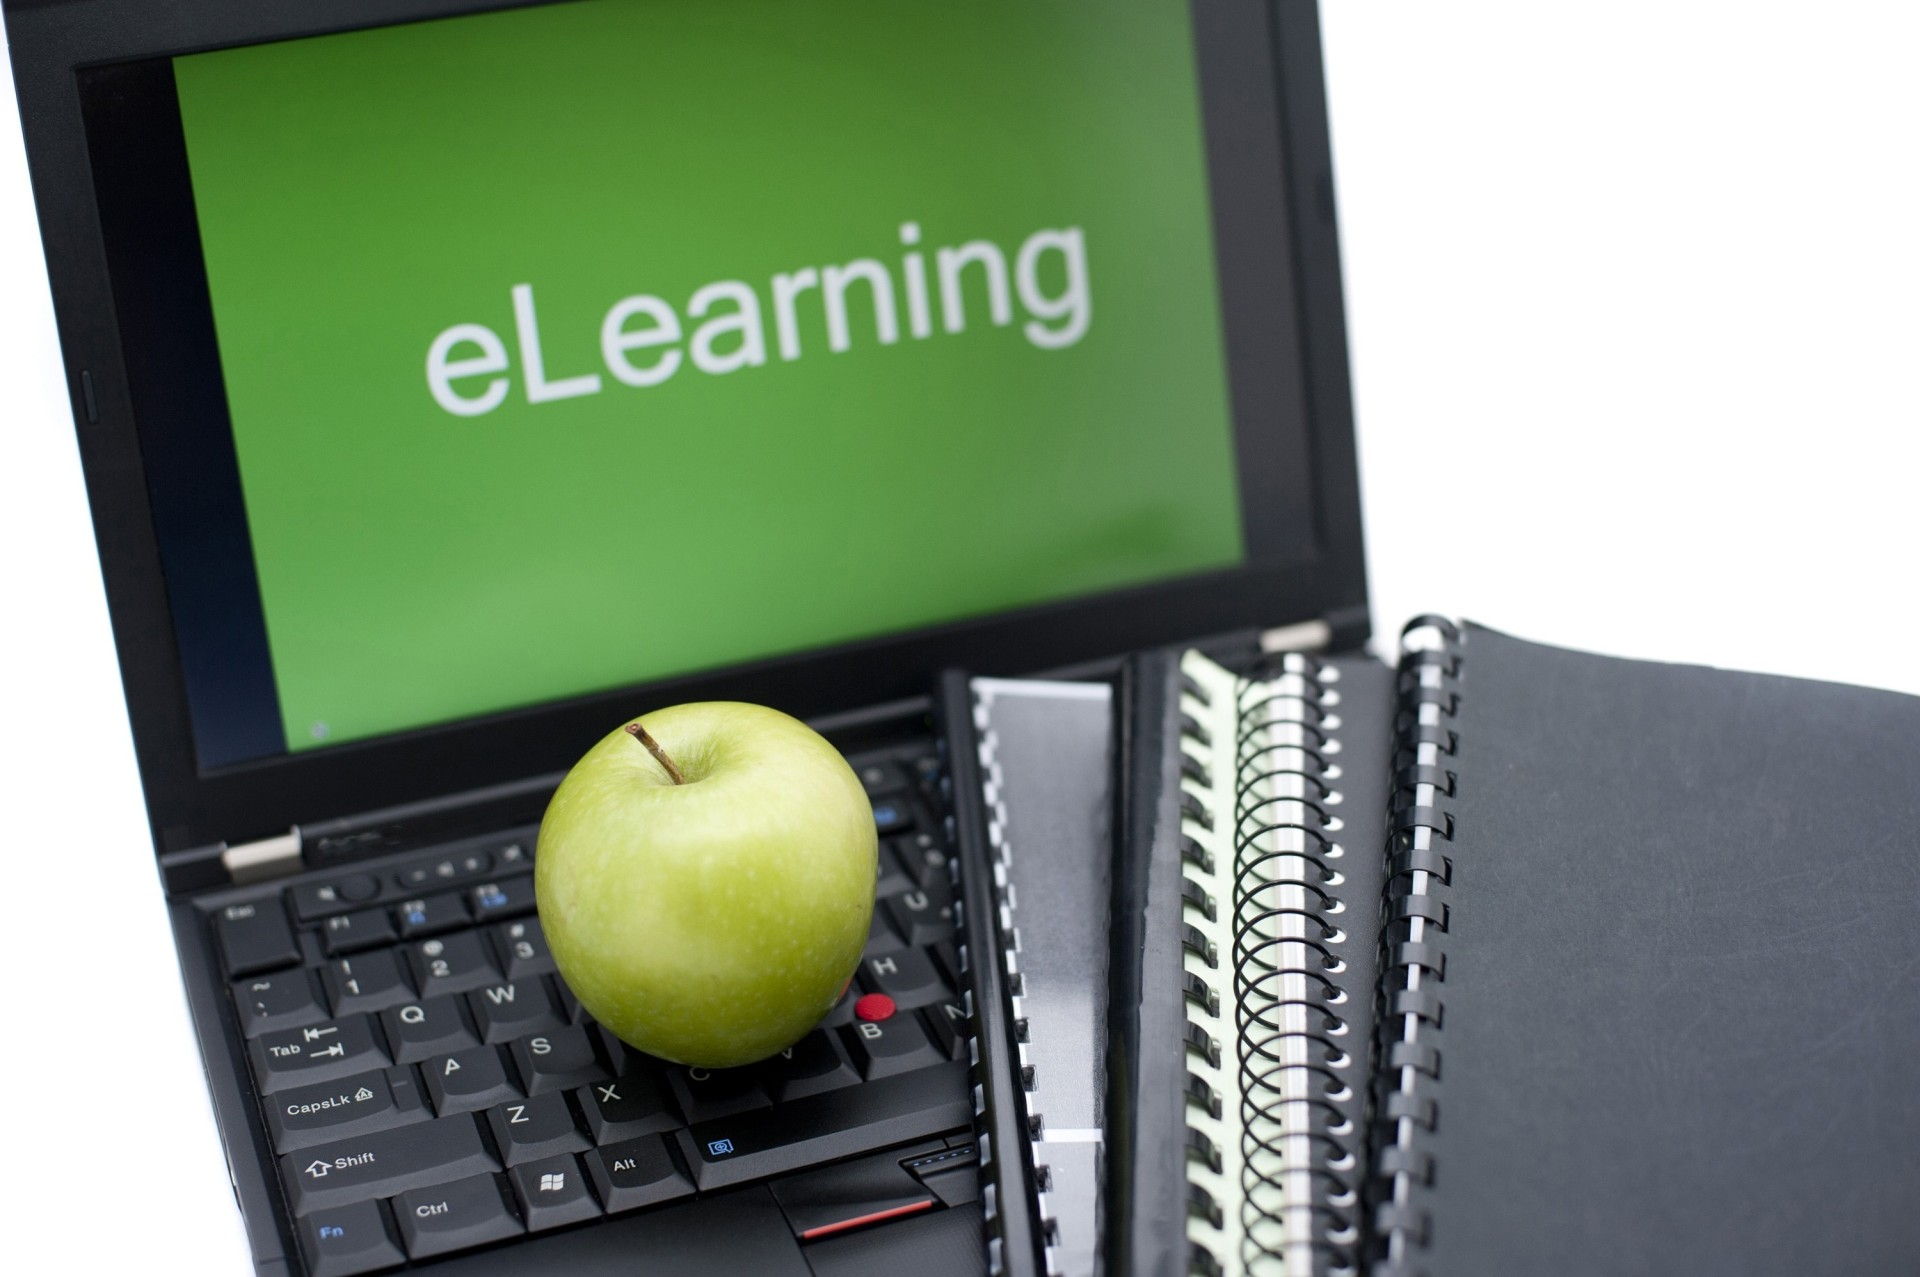 IB Environmental Systems & Societies: Distance learning - Paper 1 tips